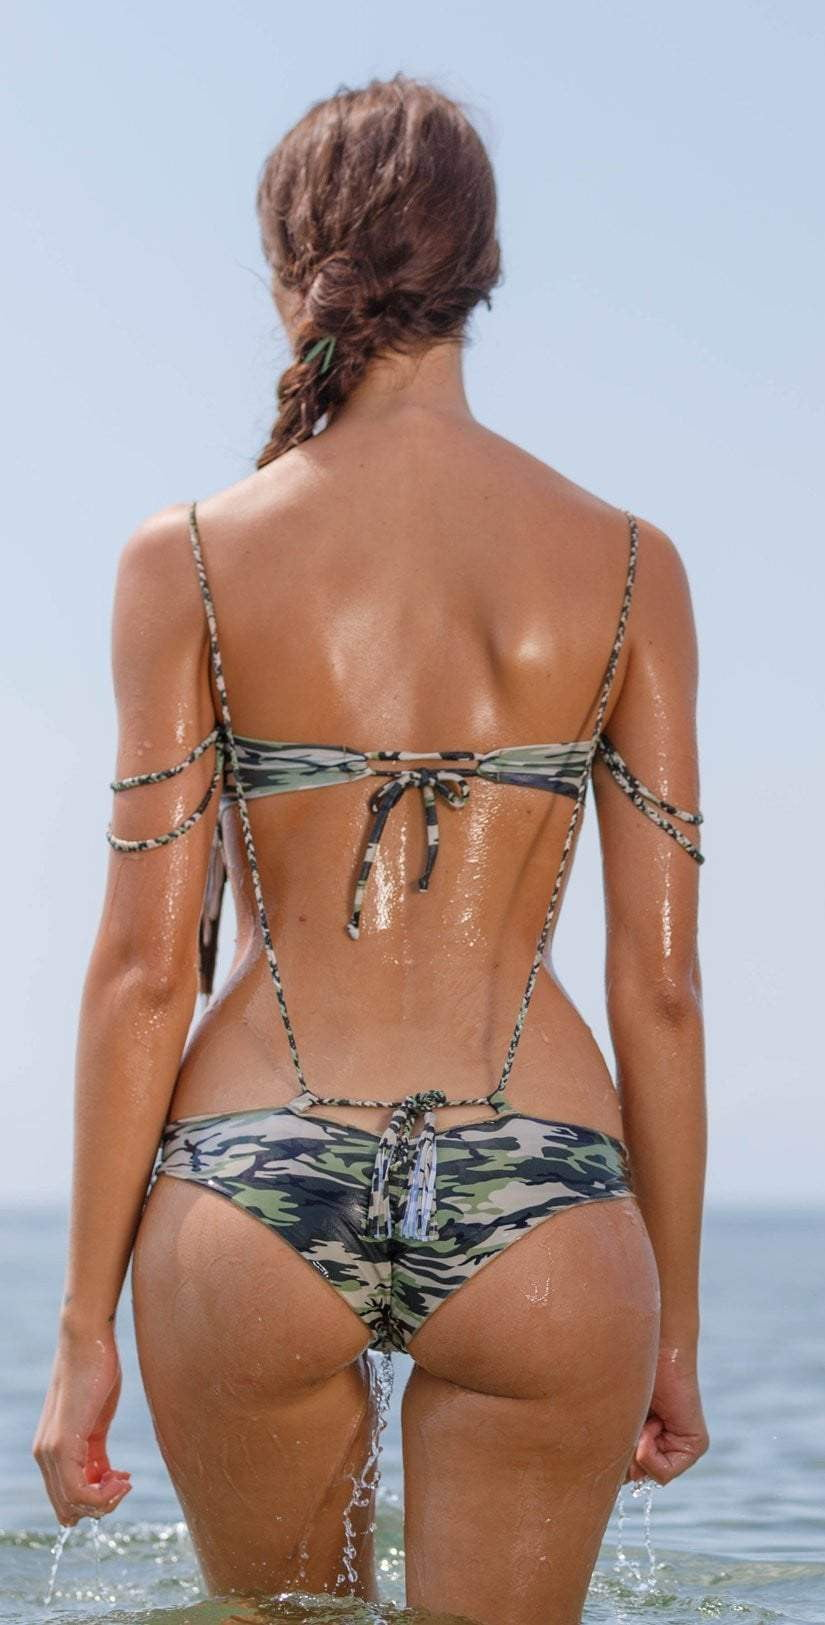 Flor de Piel Chain Top in Camo: